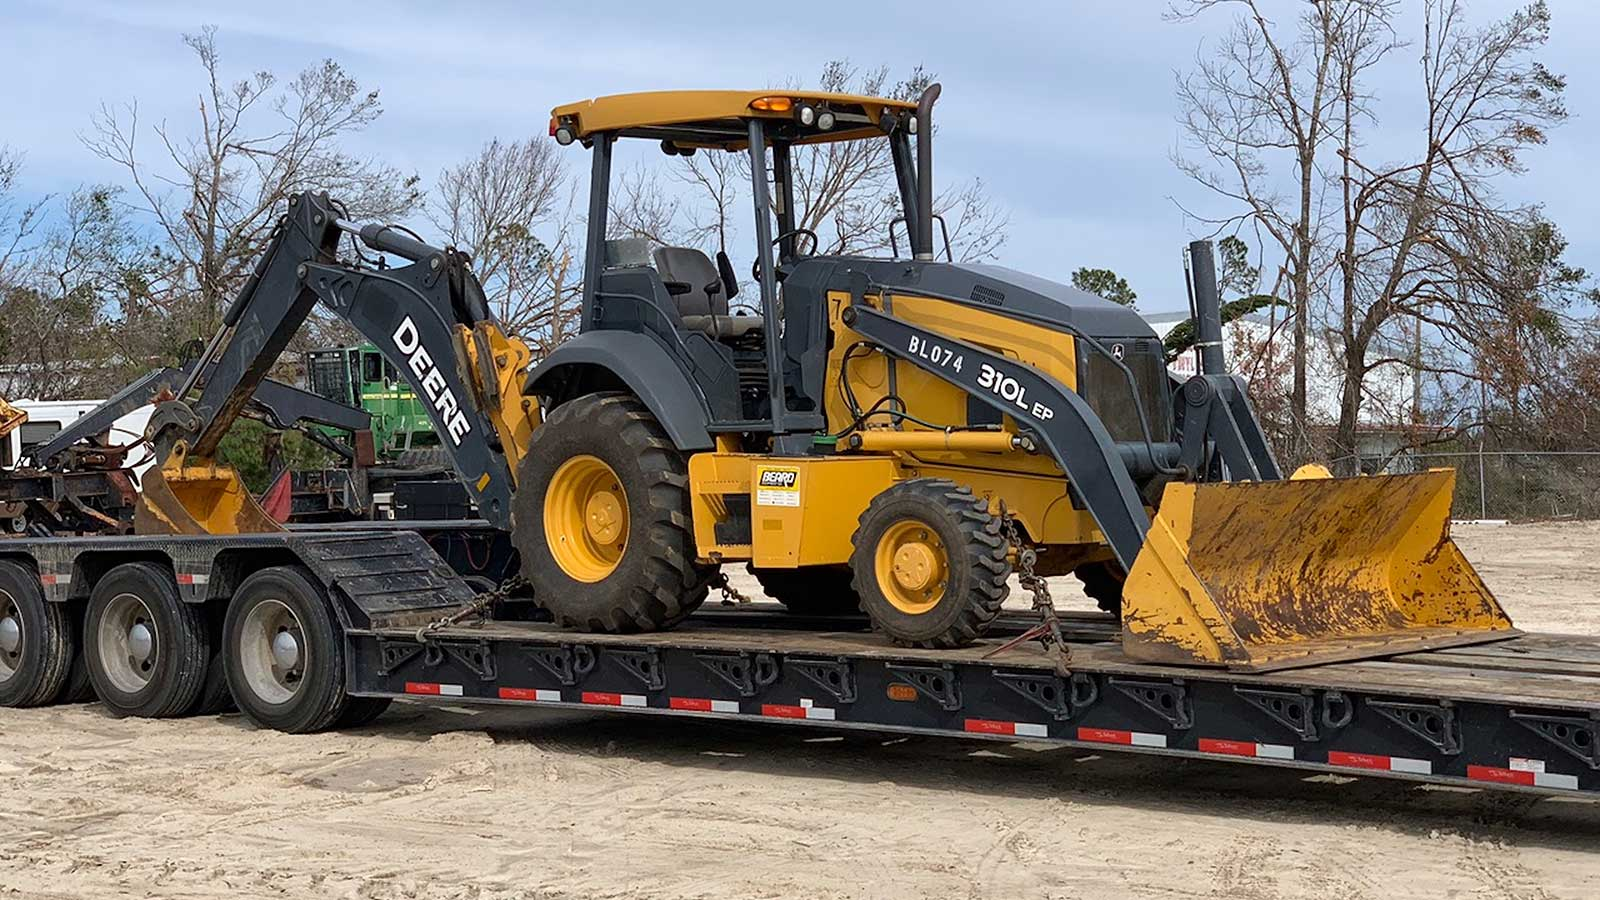 310L backhoe on a trailer ready to be delivered to the impacted area